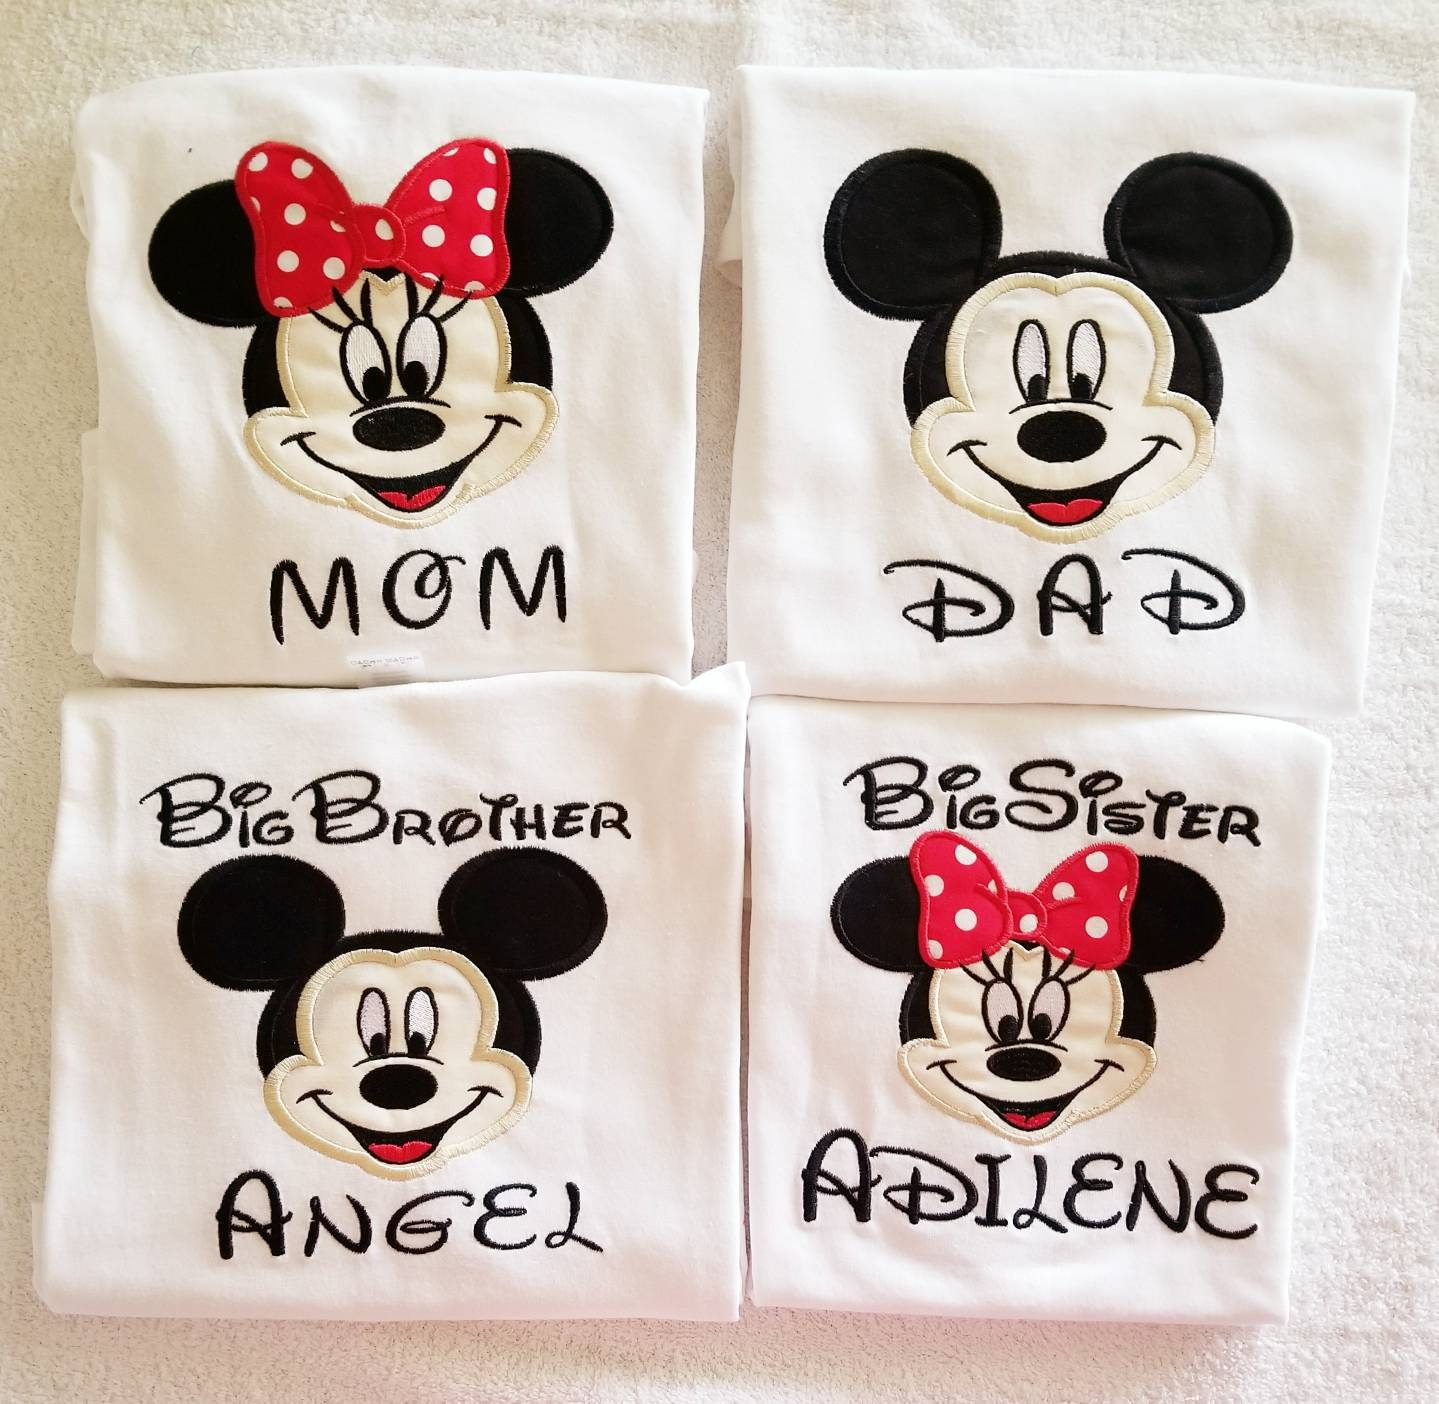 56dc64cae Mickey Mouse Birthday Shirt, Mom and Dad Shirt, Mickey Mouse Daddy shirt, Minnie  Mouse Mom shirt, Family Mickey Mouse shirts